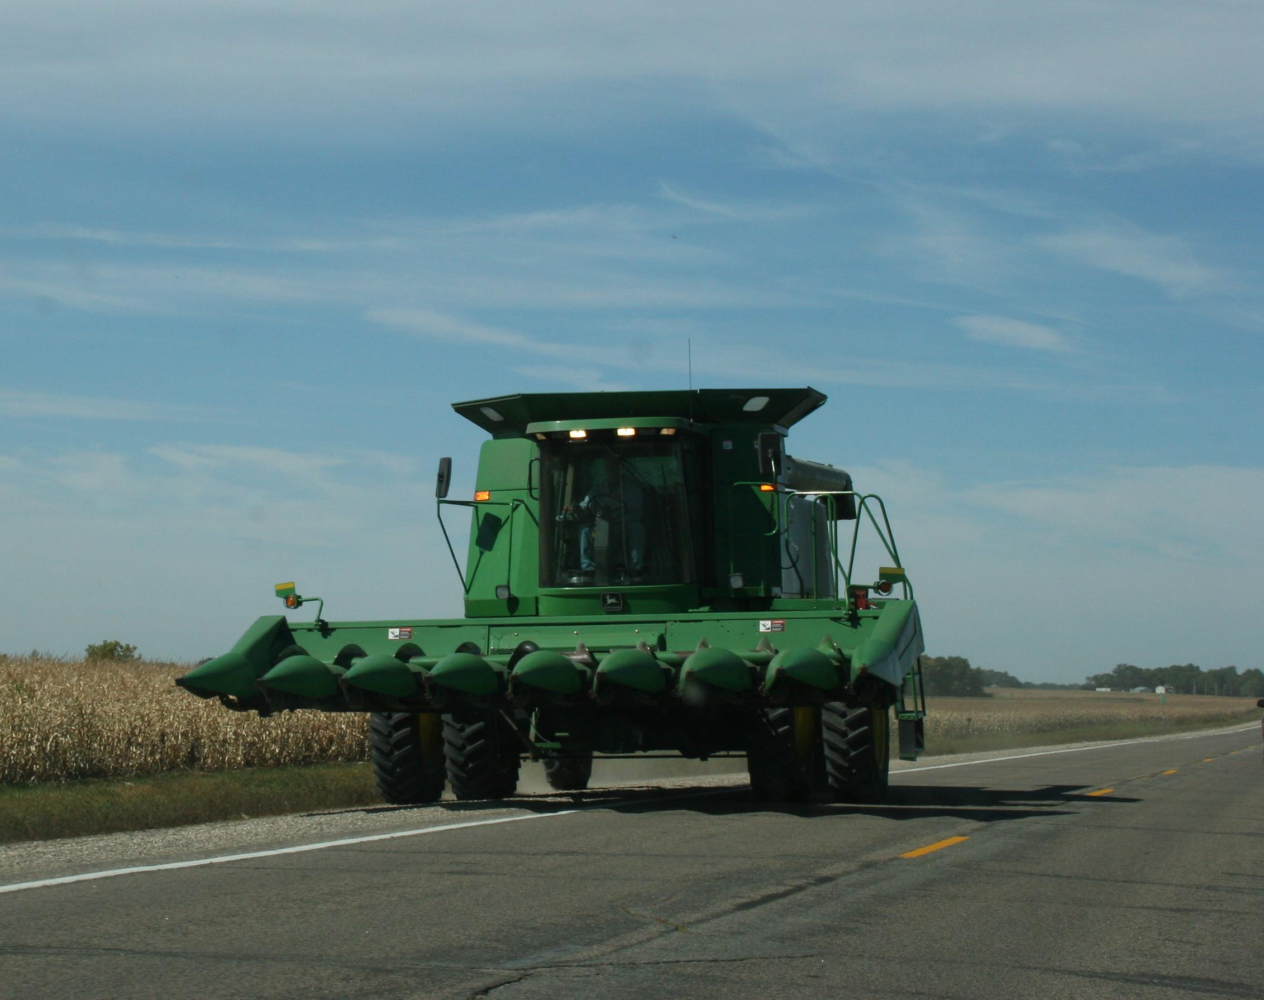 A motorcyclist was injured in a collision with a combine